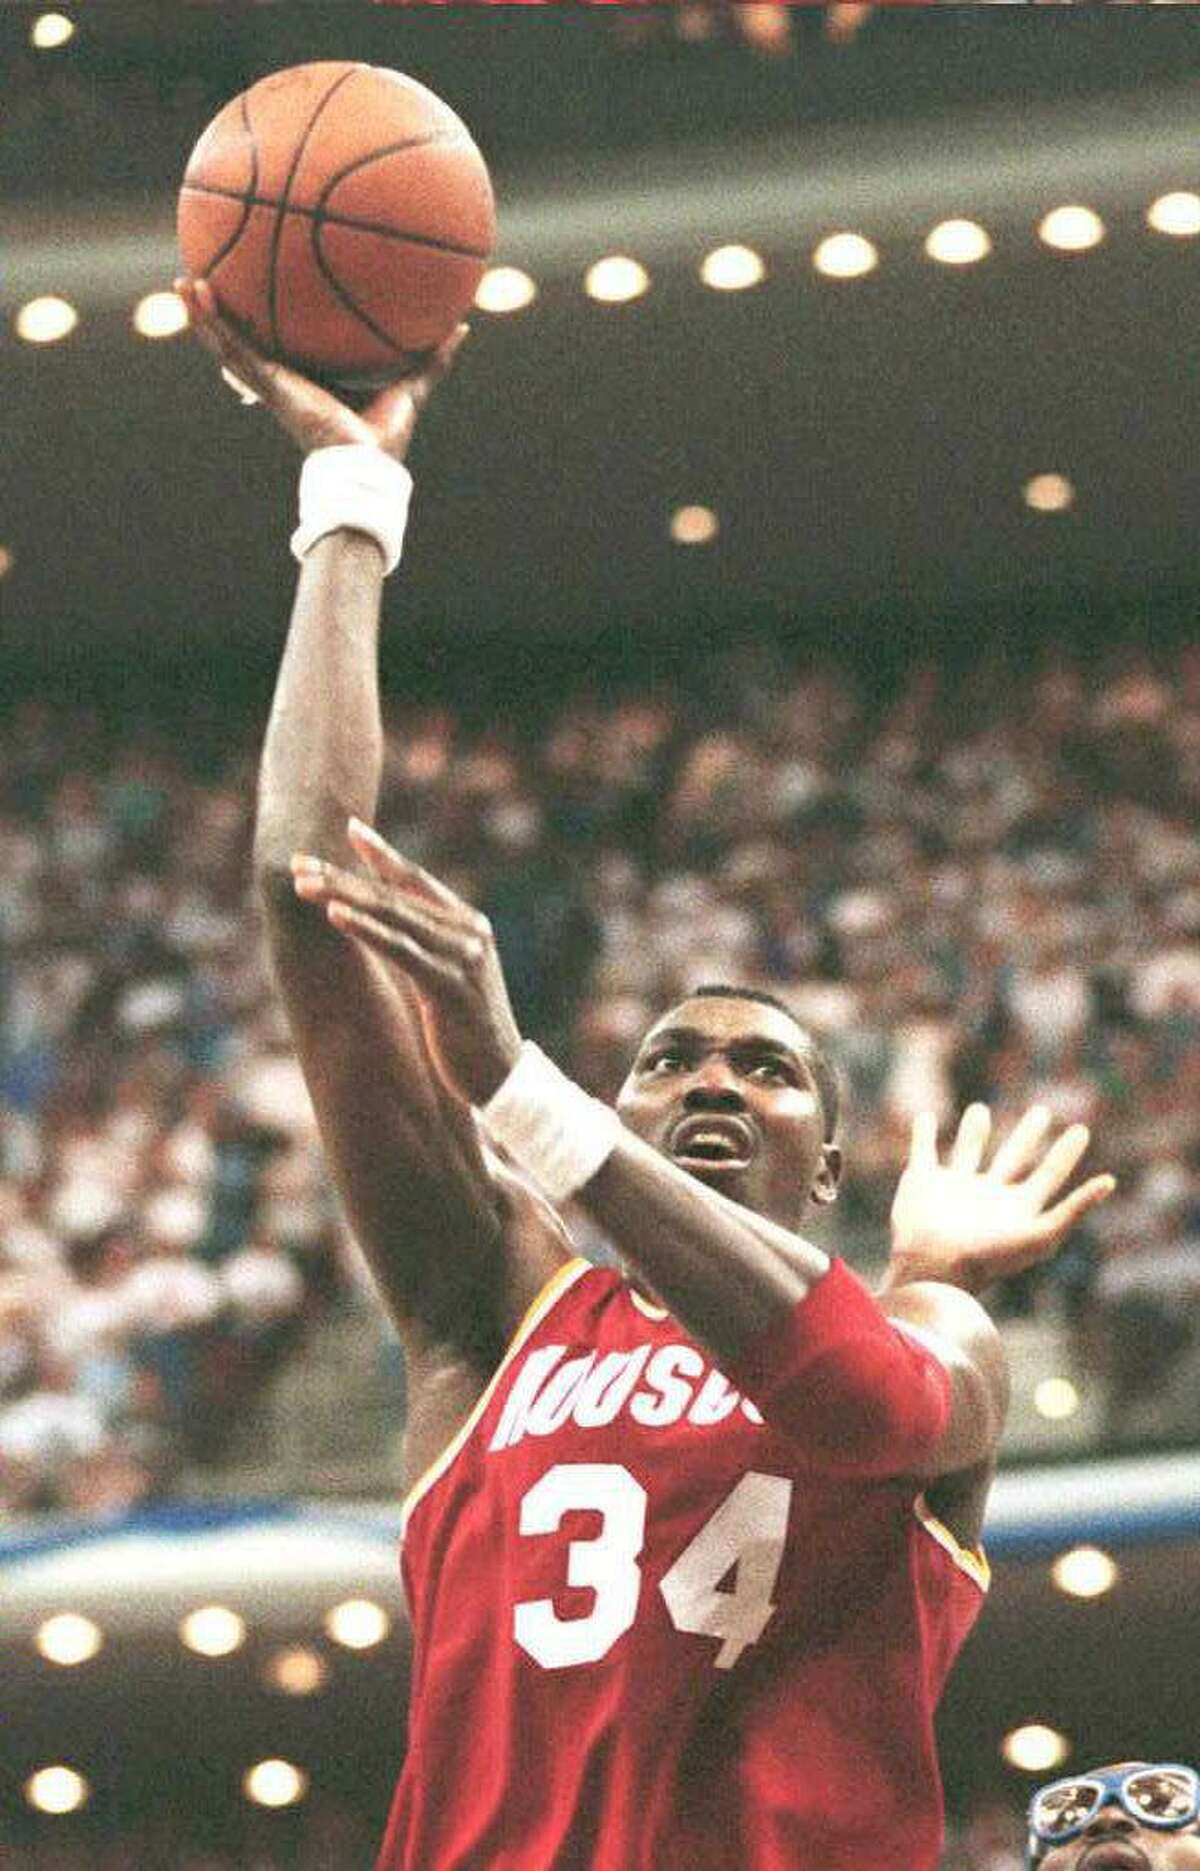 Houston Rockets' Hakeem Olajuwon scores two of his game-high 31 points during overtime of Game 1 of the NBA Finals on June 7, 1995, in Orlando, Fla. The Rockets defeated the Orlando Magic 120-118 in overtime